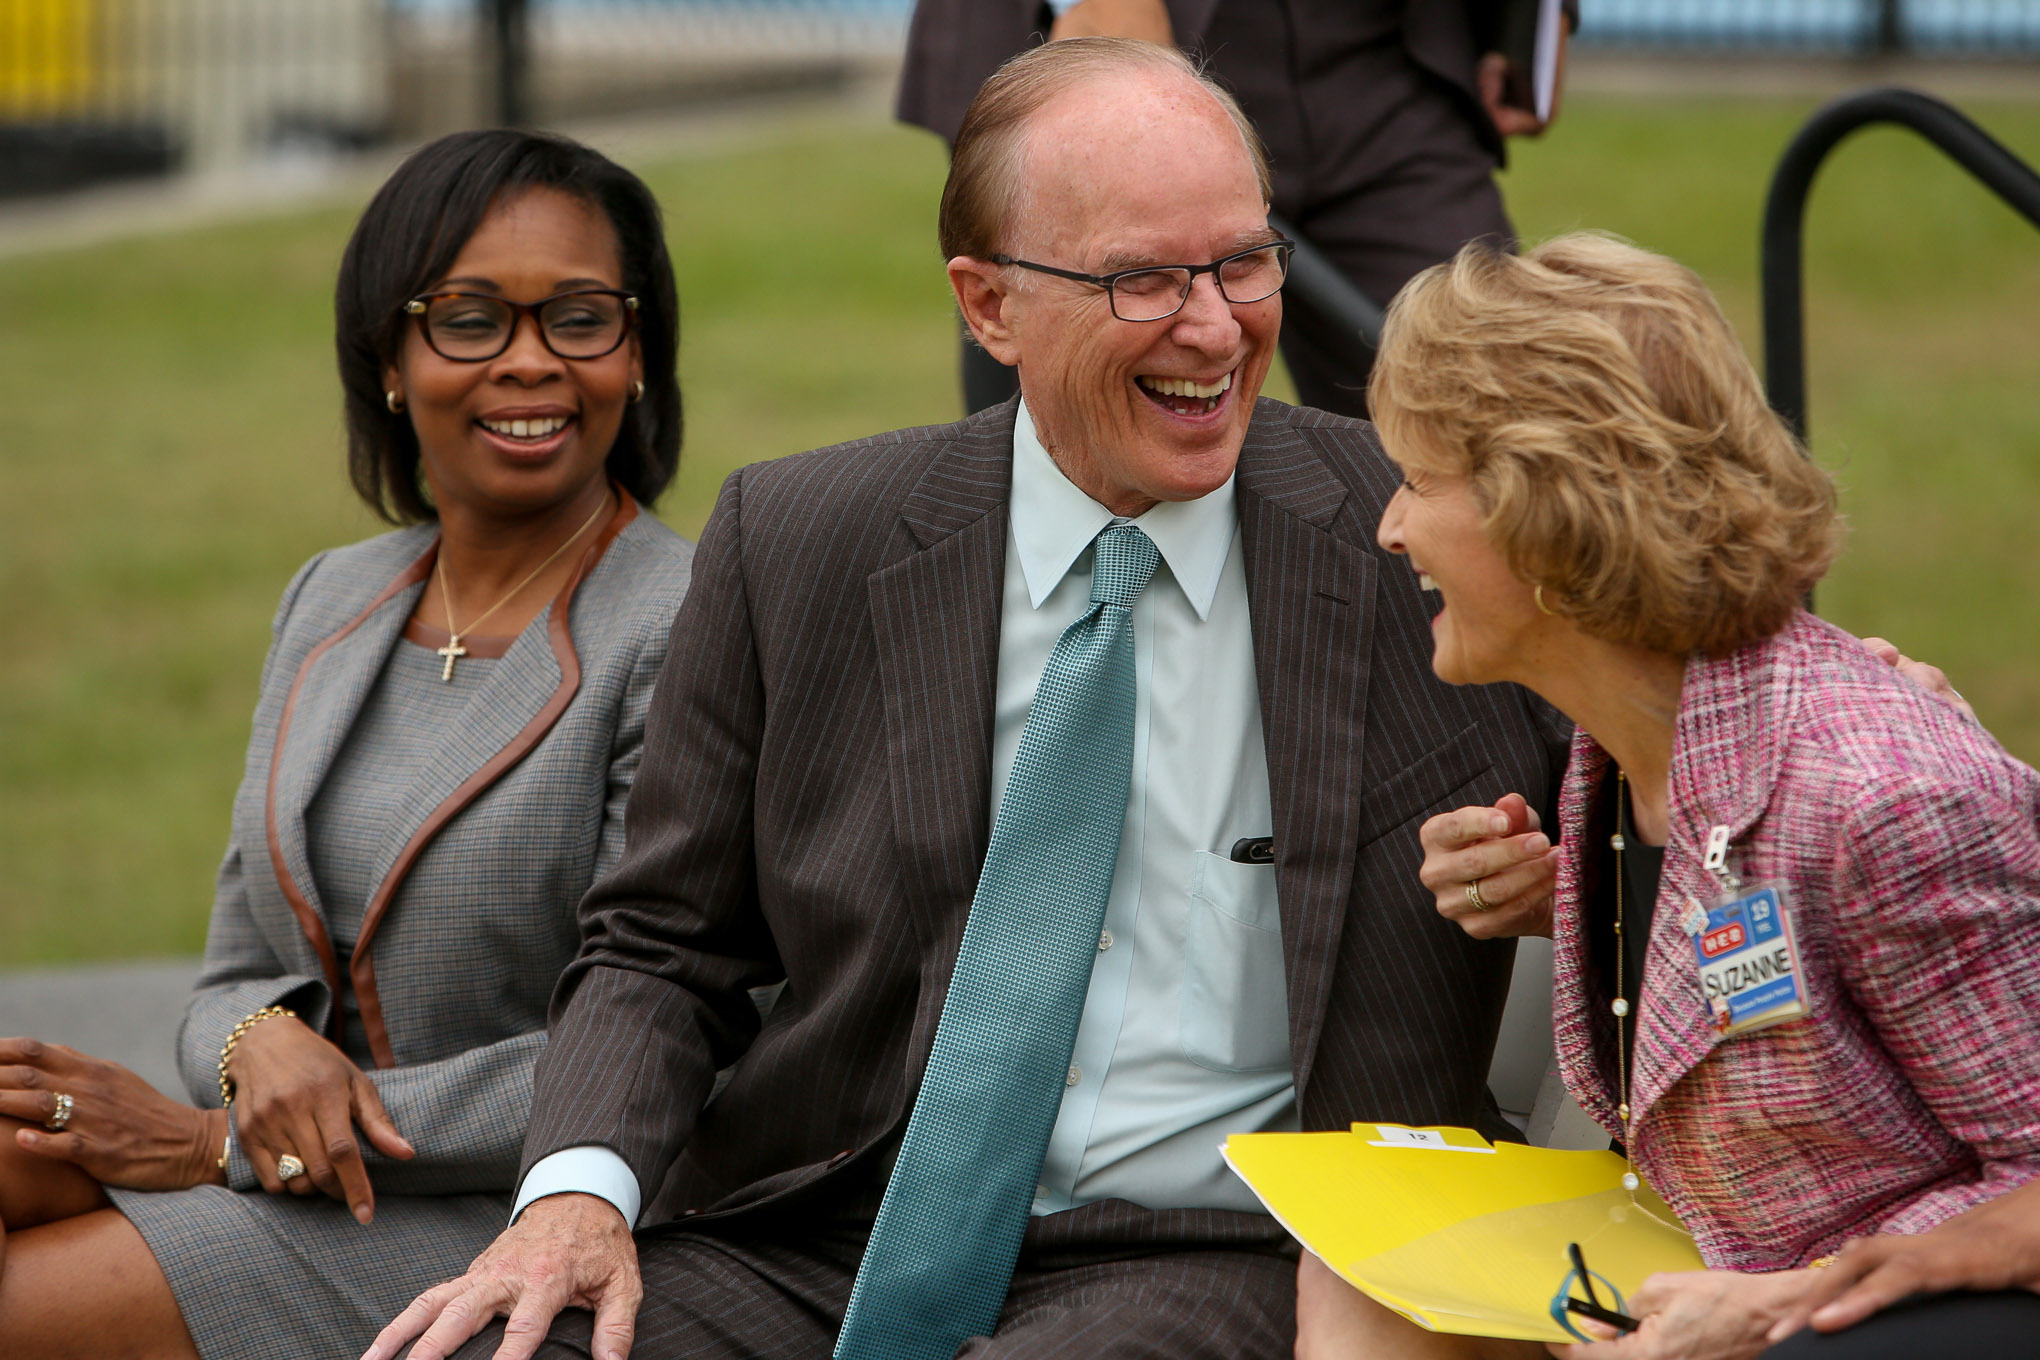 (from left) Mayor Ivy Taylor, Judge Nelson Wolff, and H-E-B Food and Drug Division President Suzanne Wade laugh following the press conference.